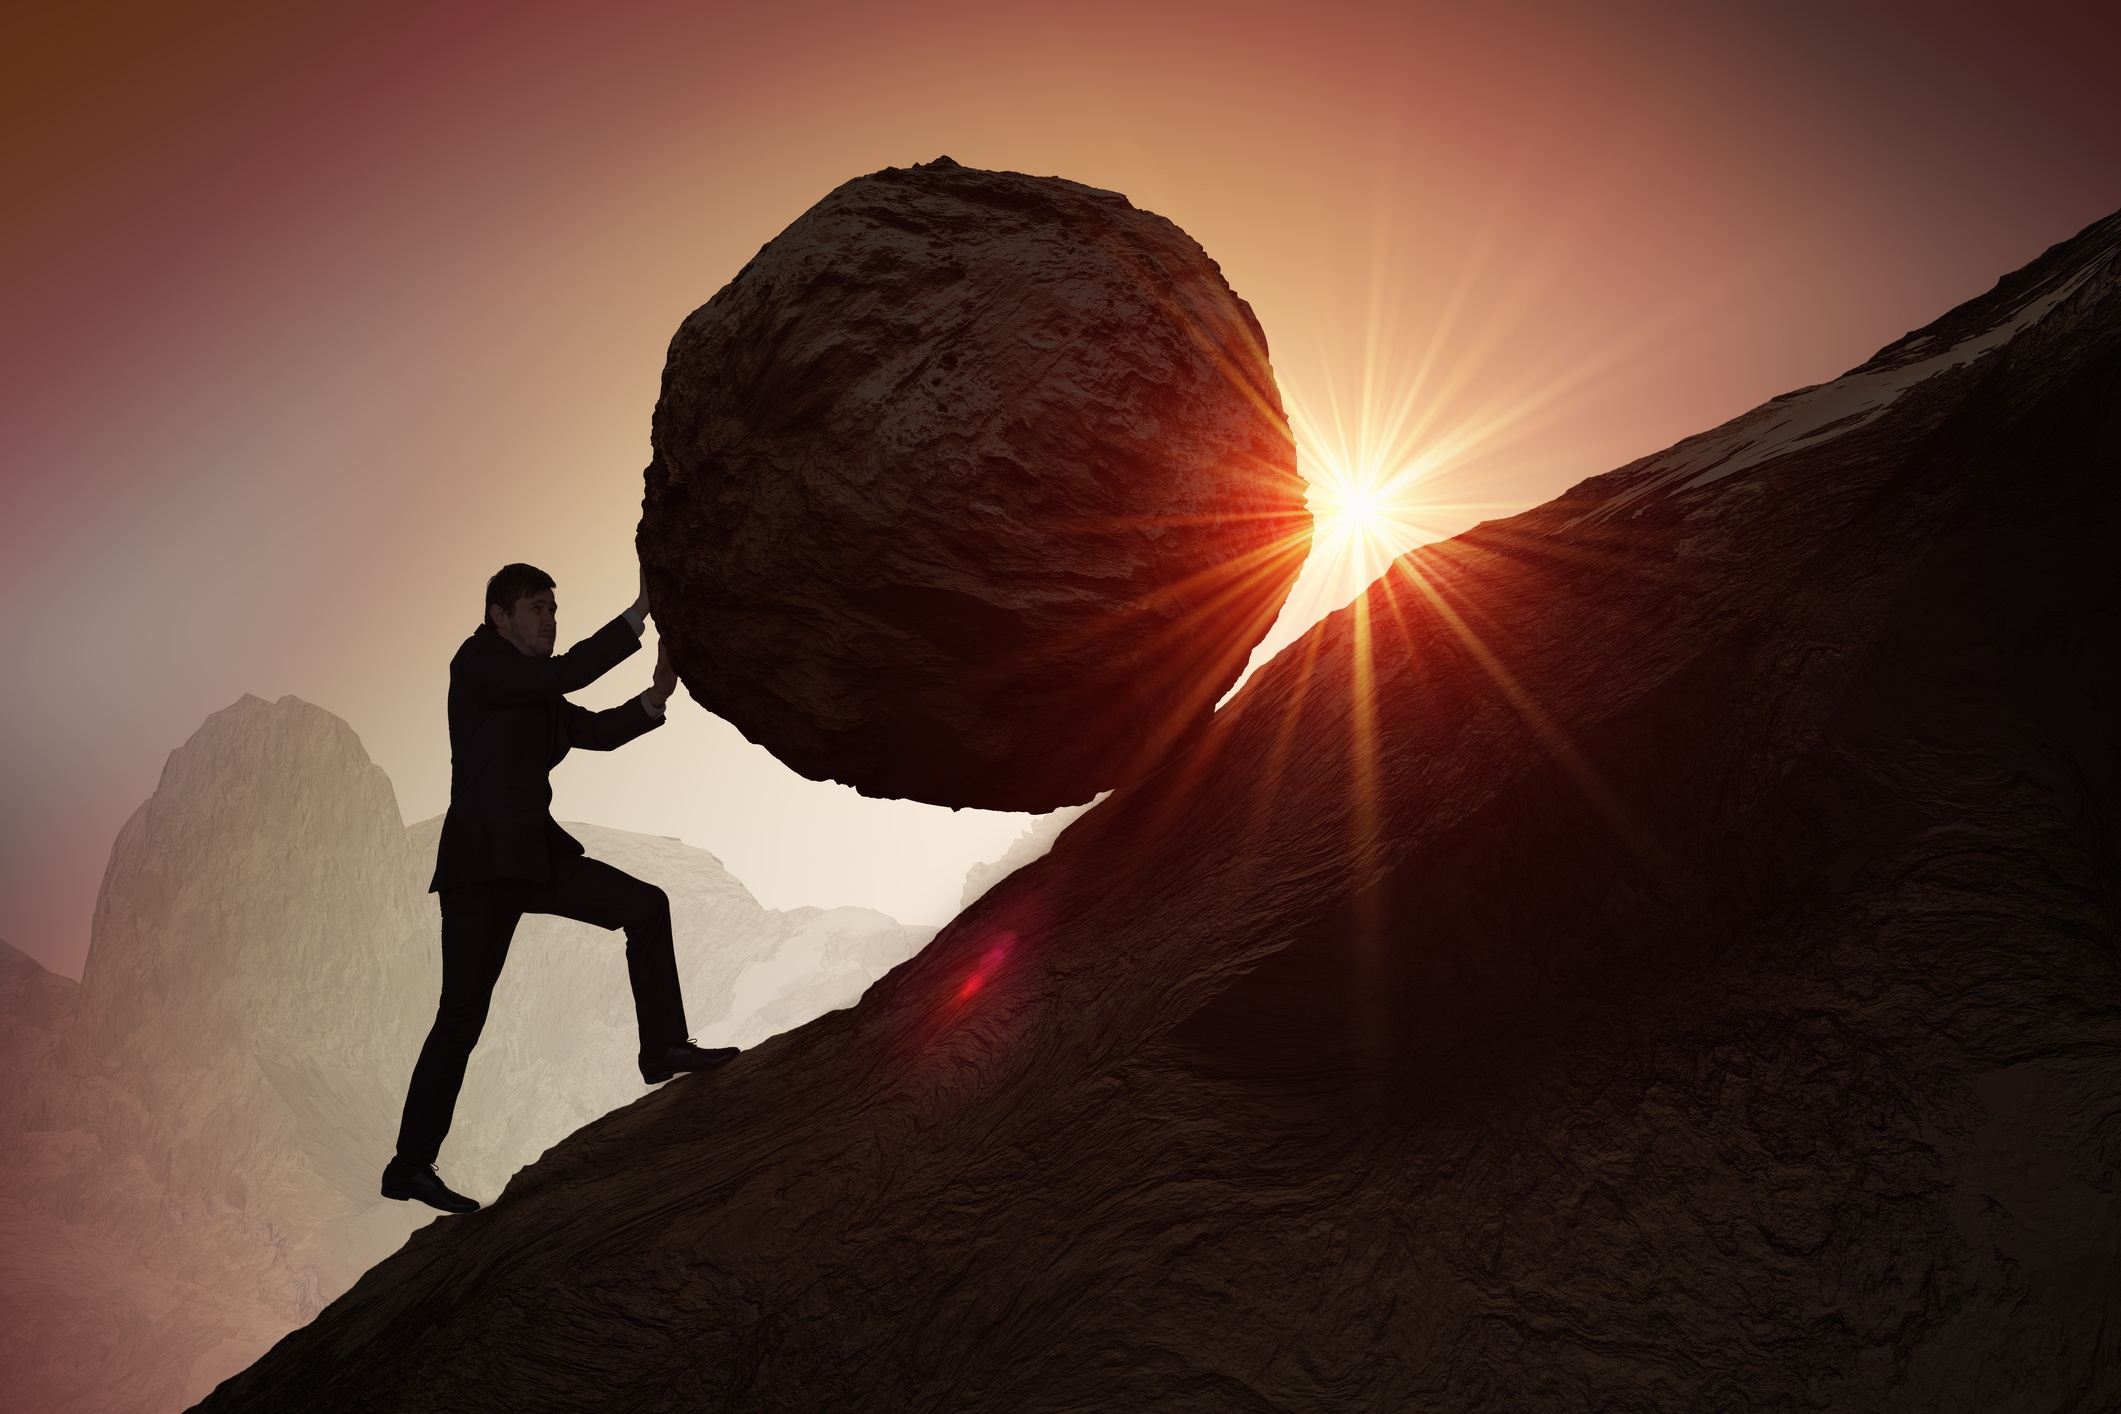 marketer-and-boulder-iStock-909048696